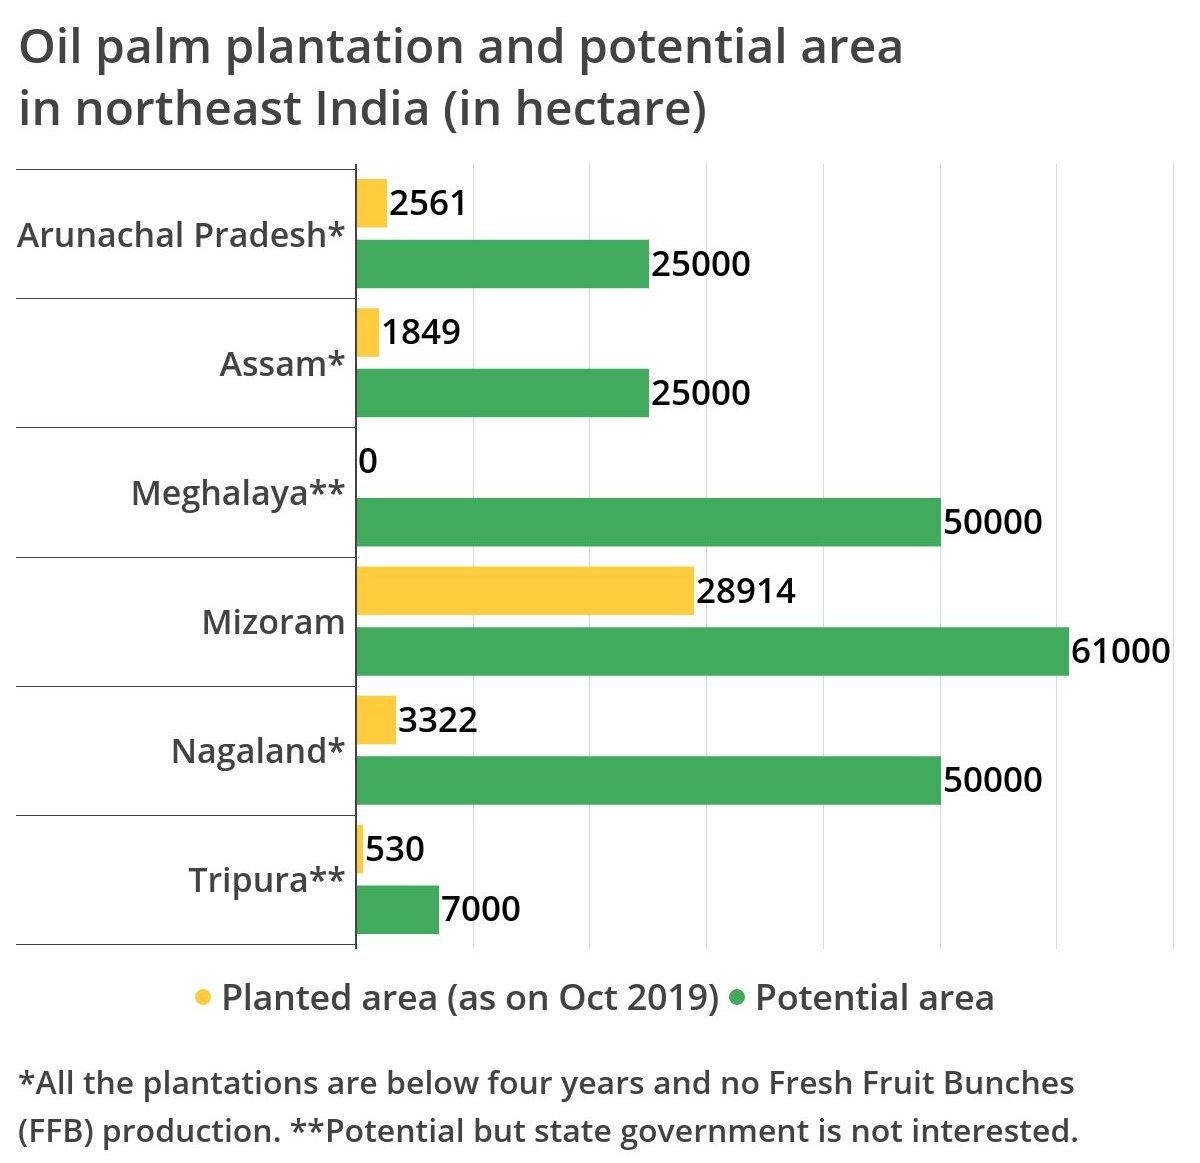 Oil palm plantation and potential areain northeast India (in hectare). Mizoram contains 78% of the total plantation area in northeast India. Data from Government of India.